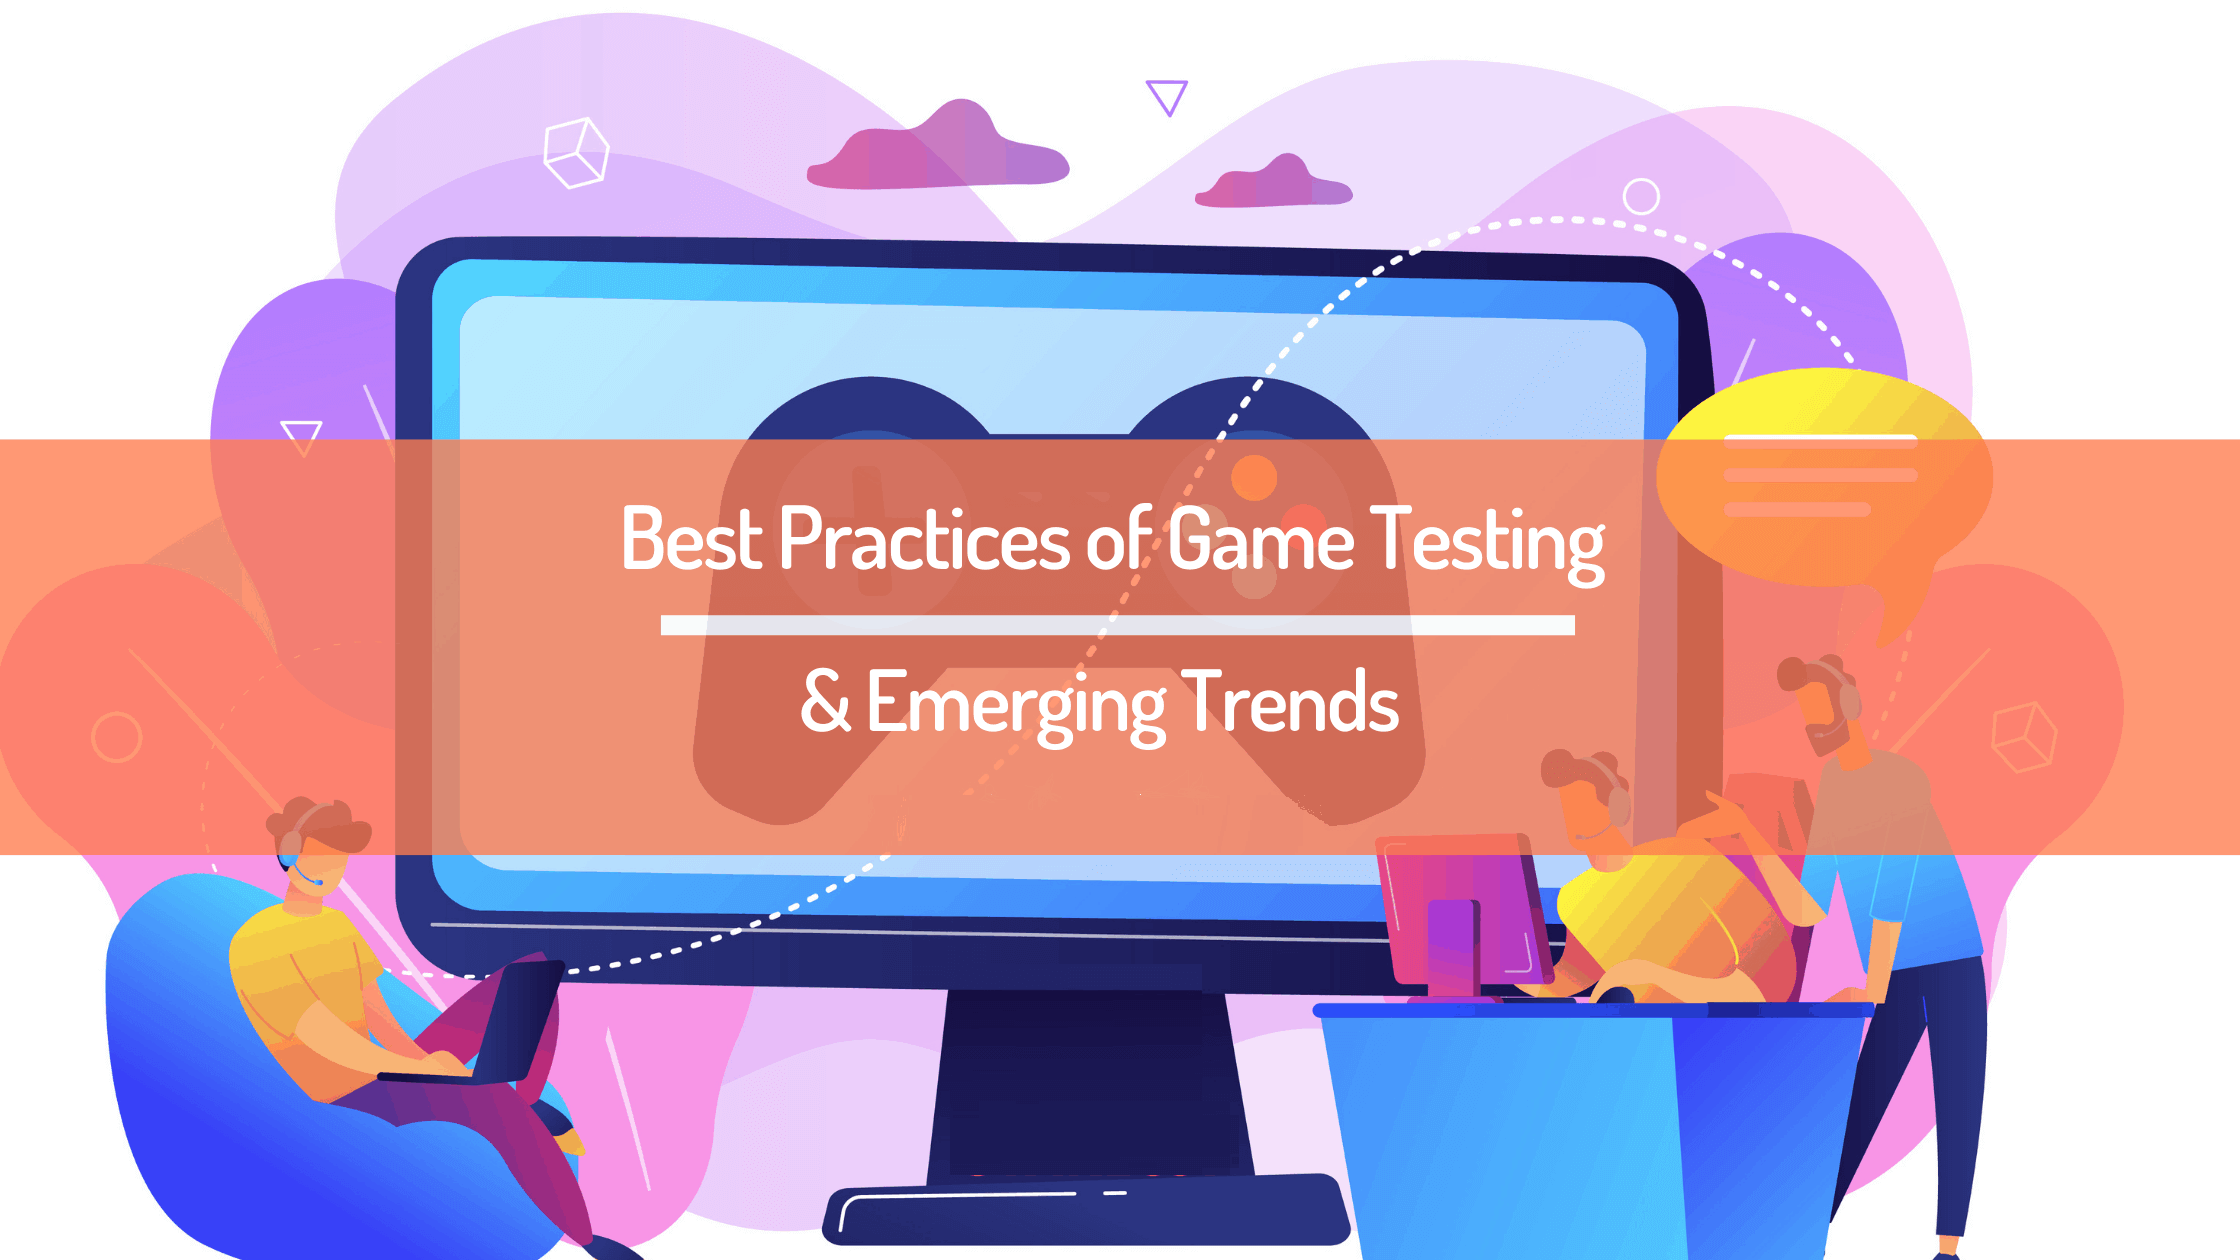 Best practices of game testing